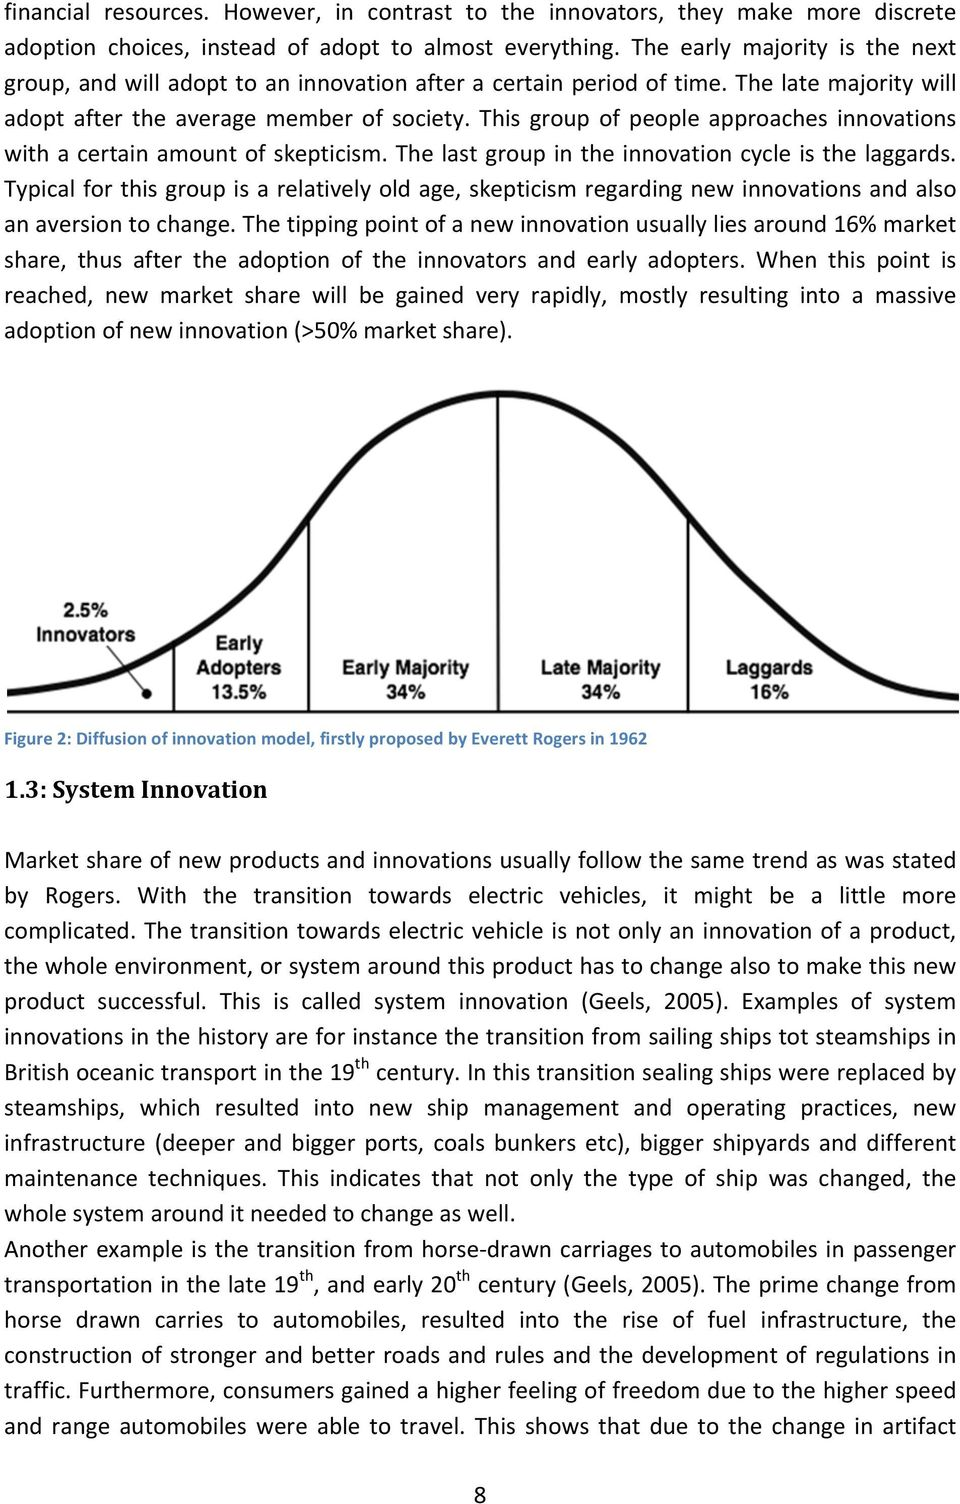 This group of people approaches innovations with a certain amount of skepticism. The last group in the innovation cycle is the laggards.